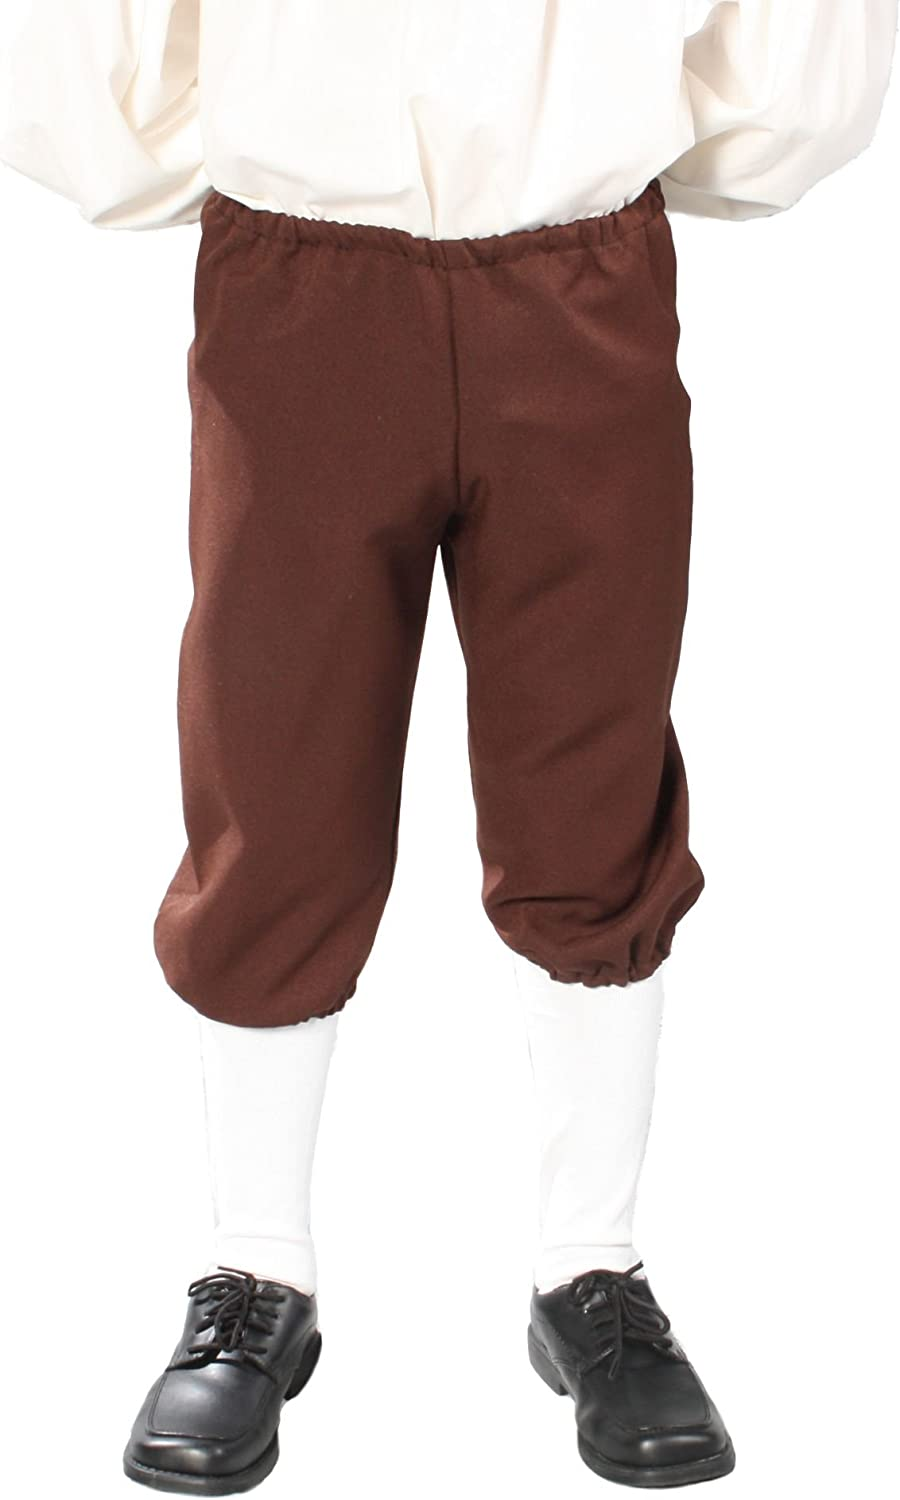 Alexanders Costumes Breeches